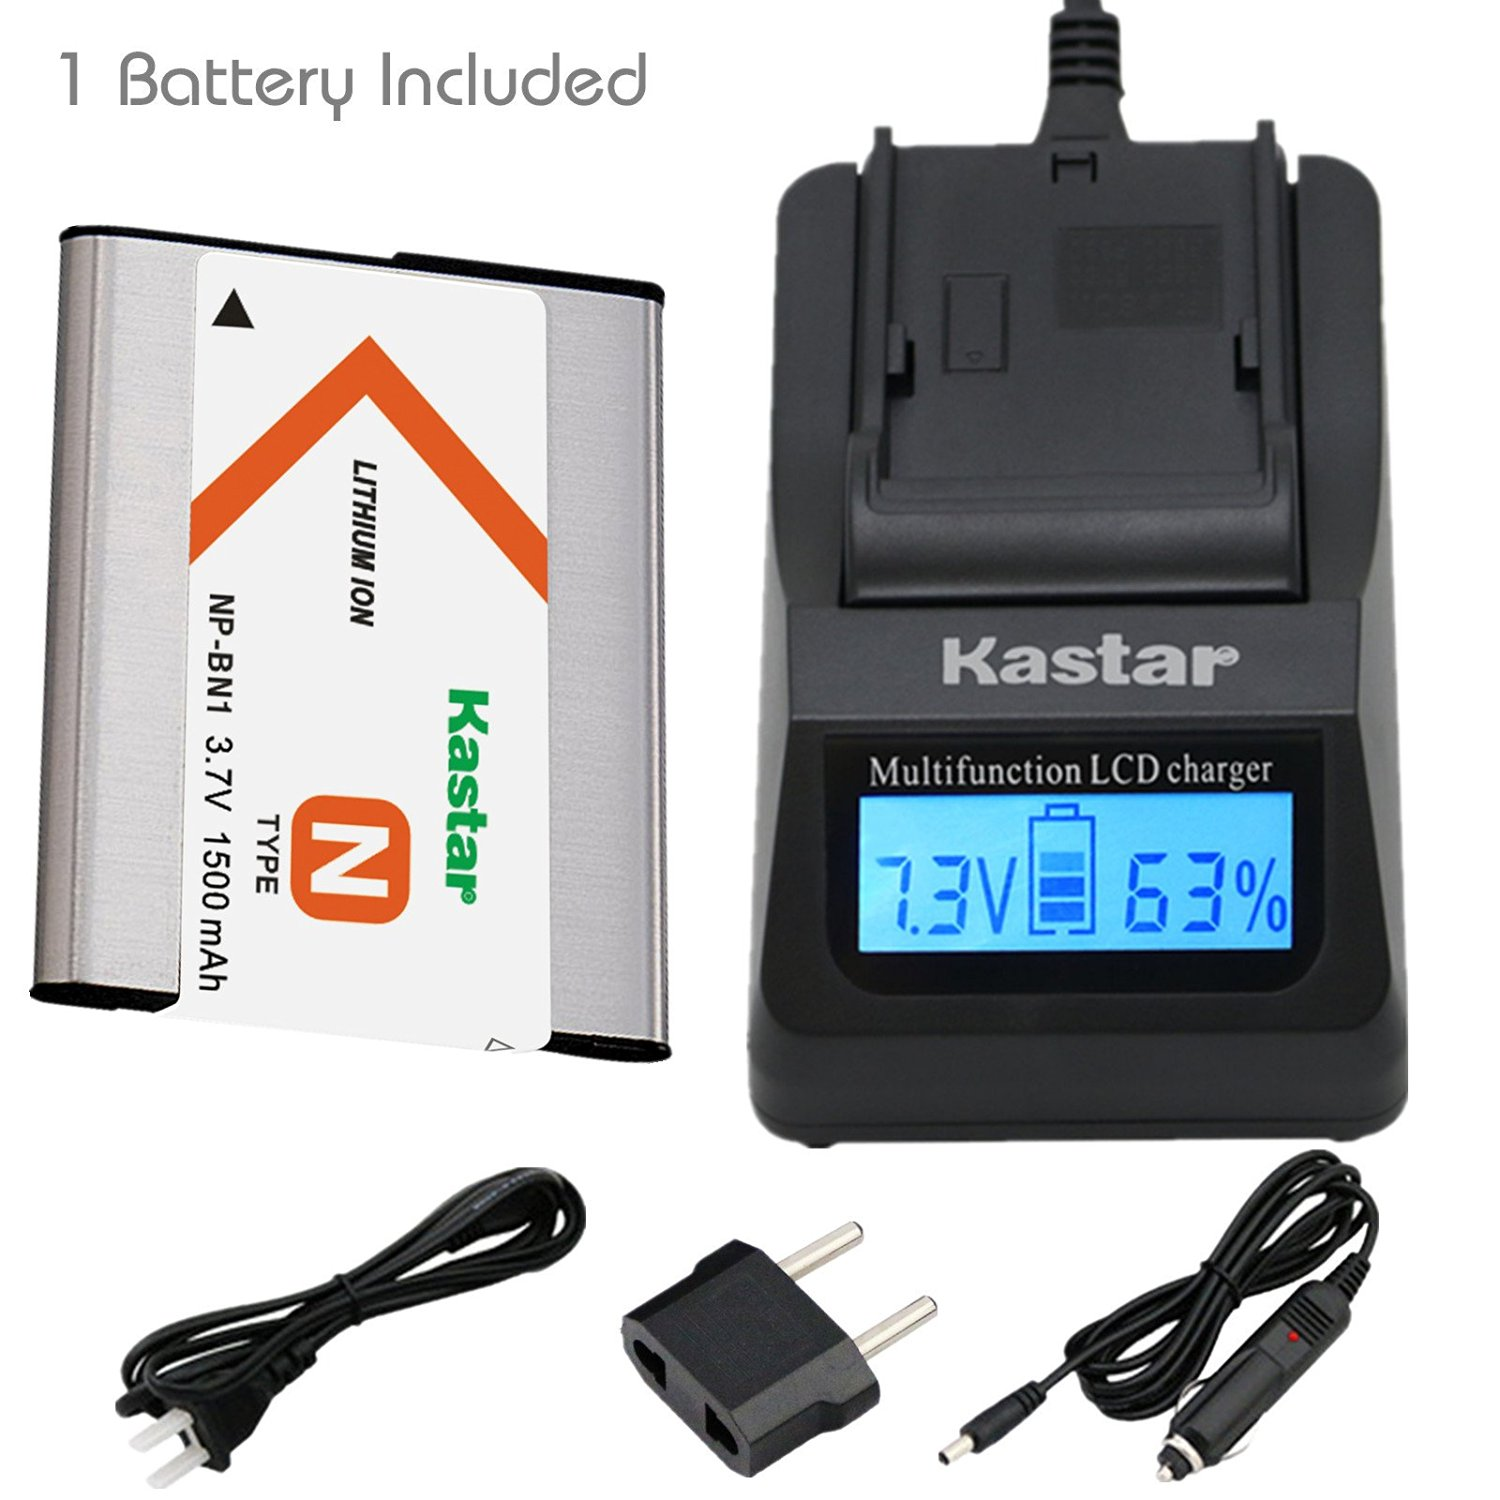 Kastar Ultra Fast Charger(3X faster) Kit and Battery (1-Pack) for NP-BN1, BC-CSN work with Sony Cyber-shot